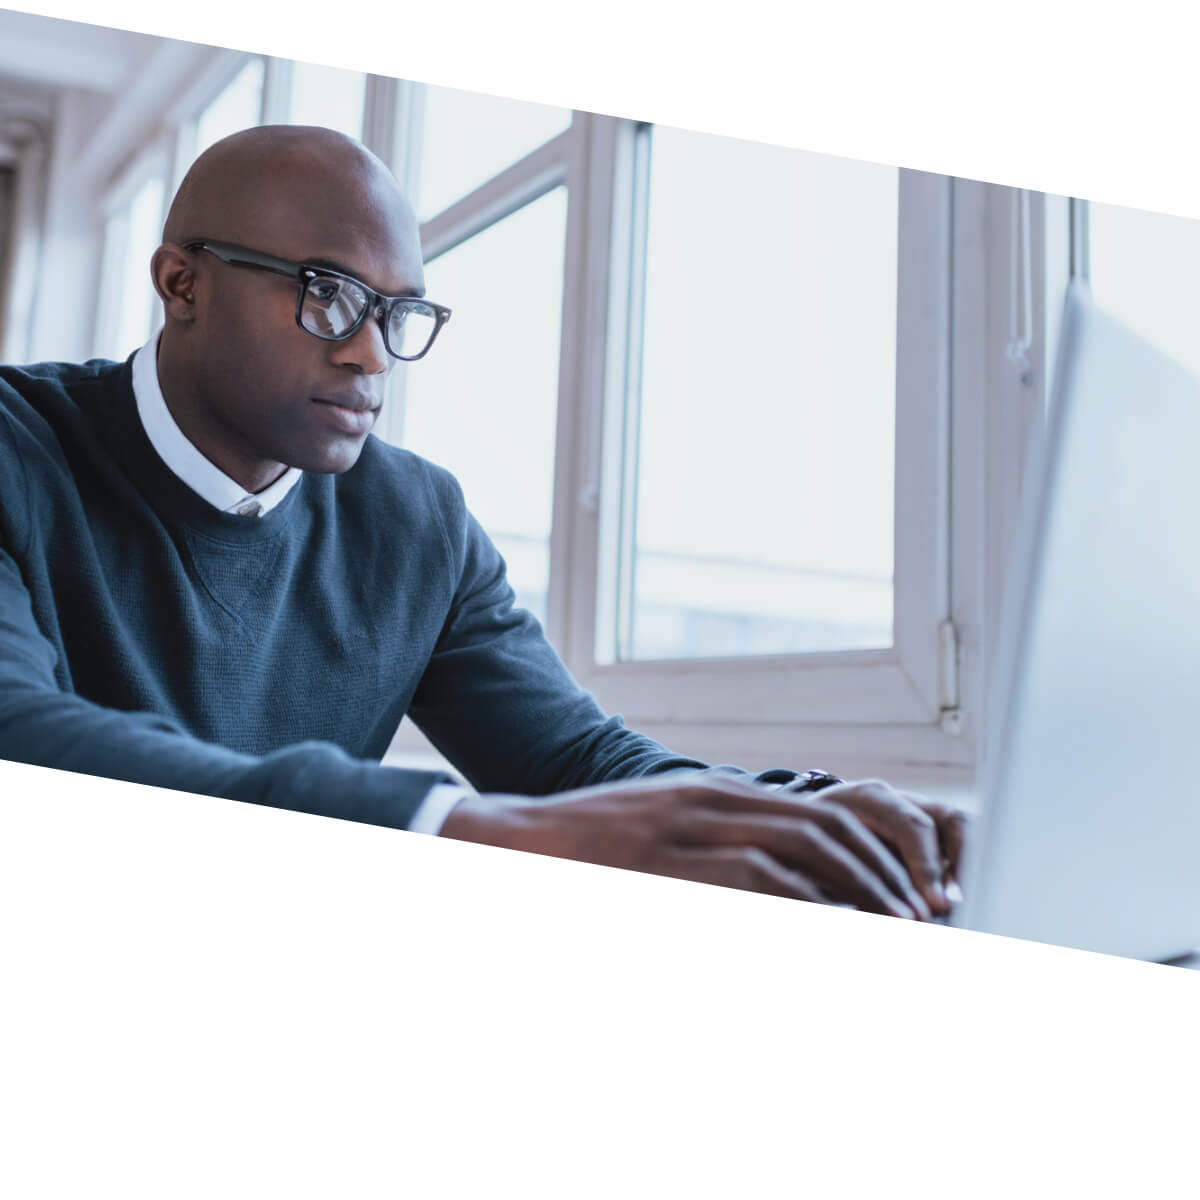 African American man with glasses typing on a laptop